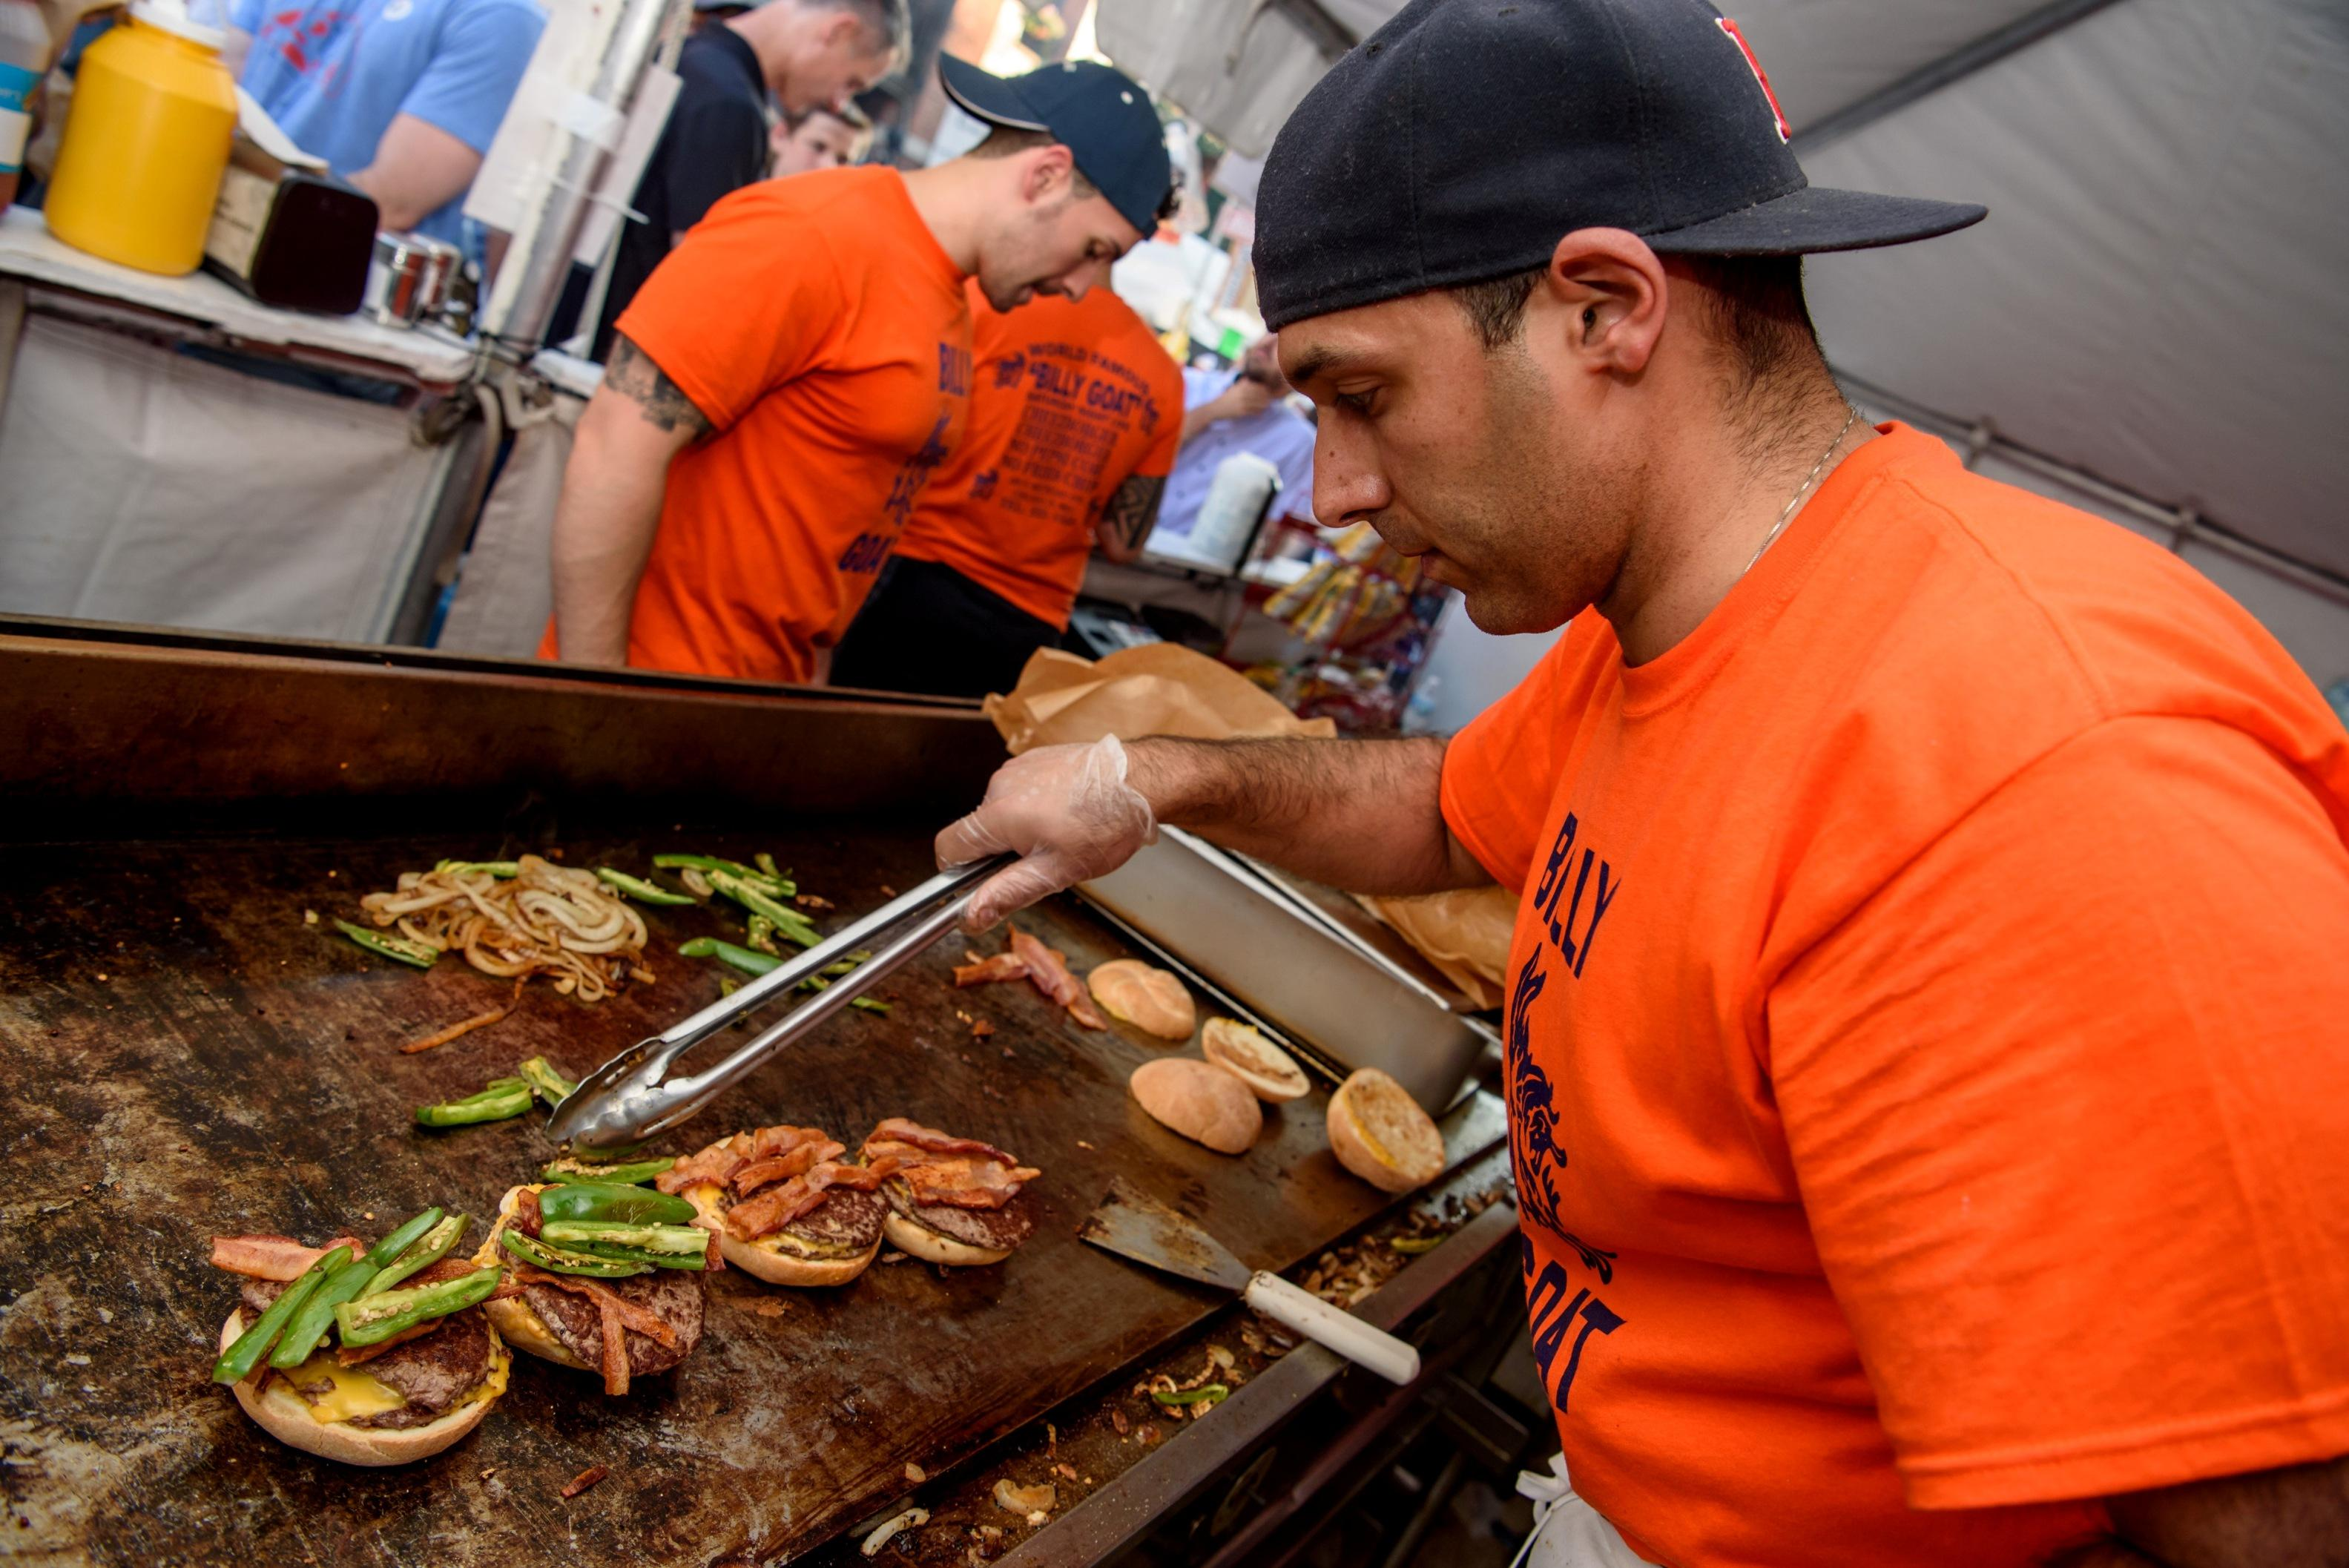 Roscoe Village Burger Fest is setting the grill on fire from September 4 to 5, 2021. (Courtesy of Special Events Management)